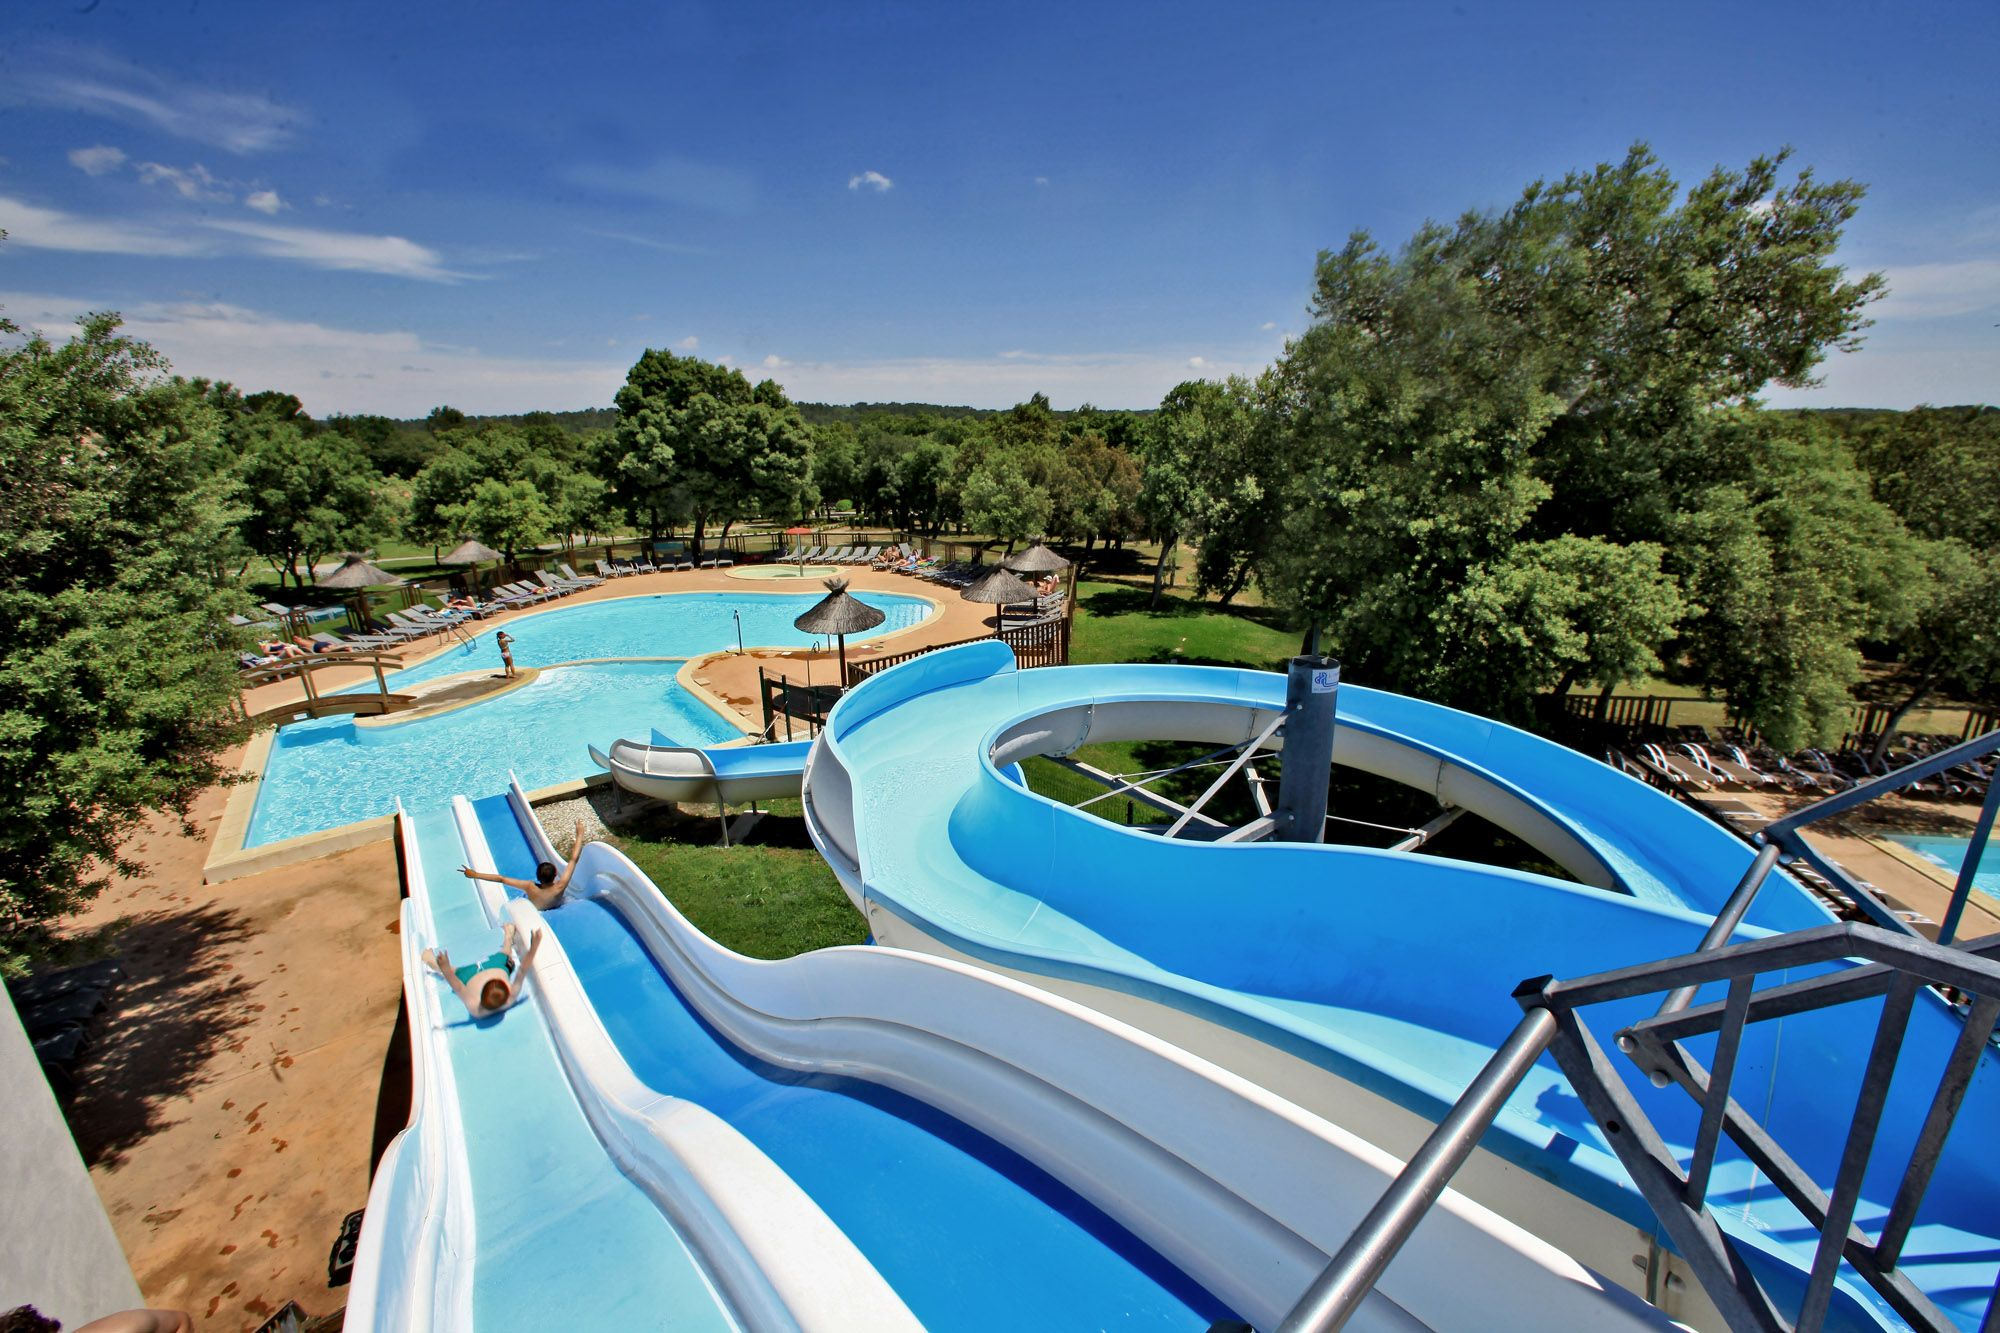 Camping uzes camping corse avec transport